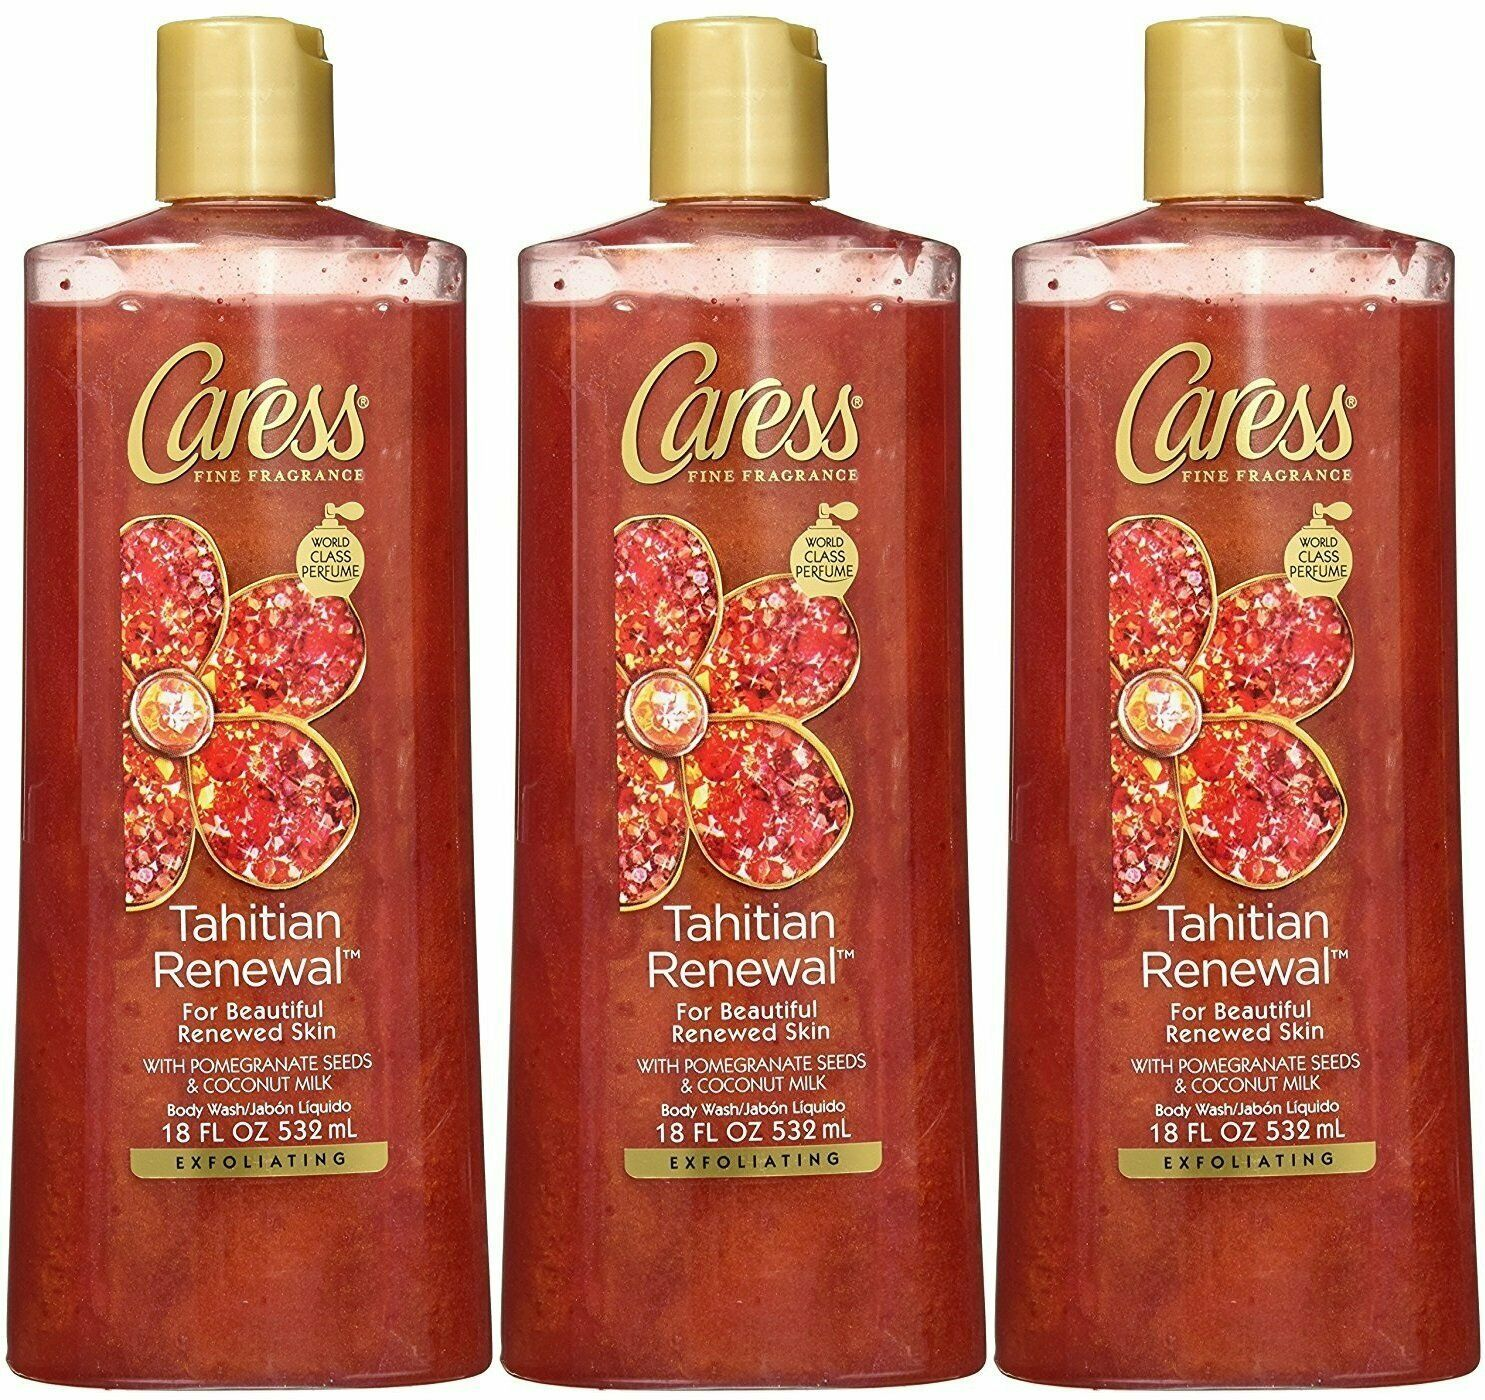 Primary image for Caress Tahitian Renewal Exfoliating Body Wash, 18 Ounce (Pack of 3)